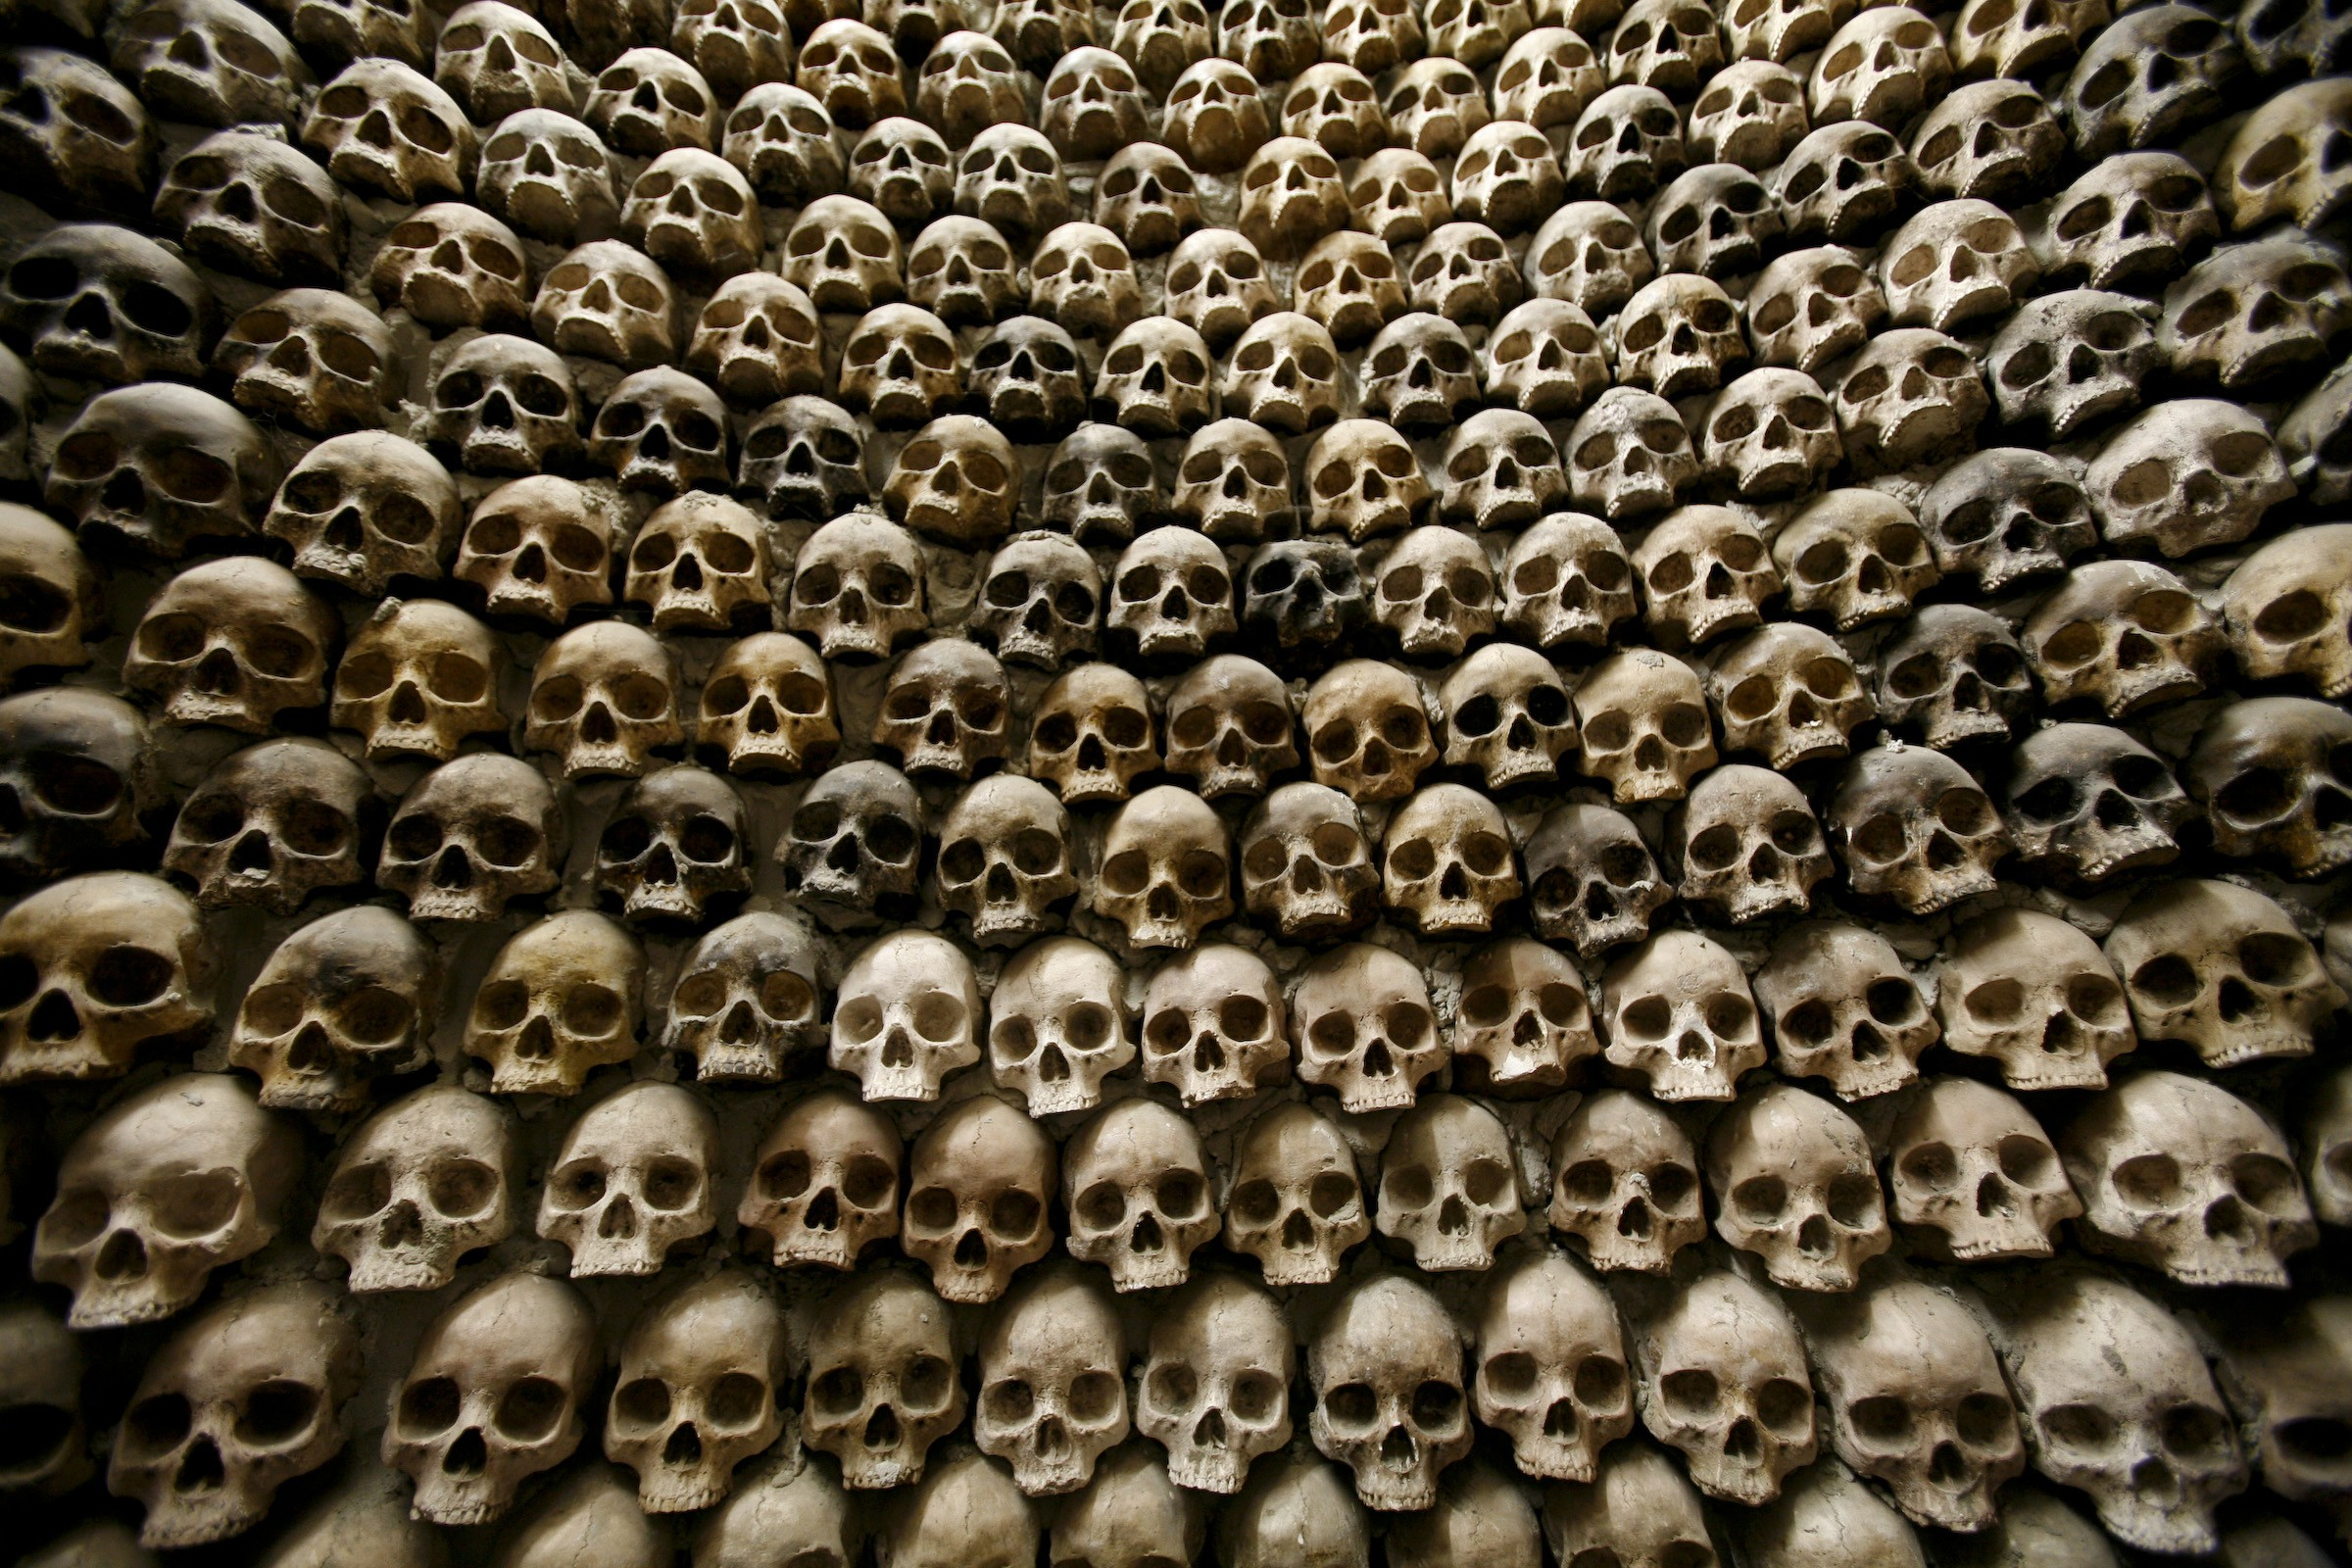 Skull Wall Destkop BackgroundsDestkop Backgrounds 2400x1600